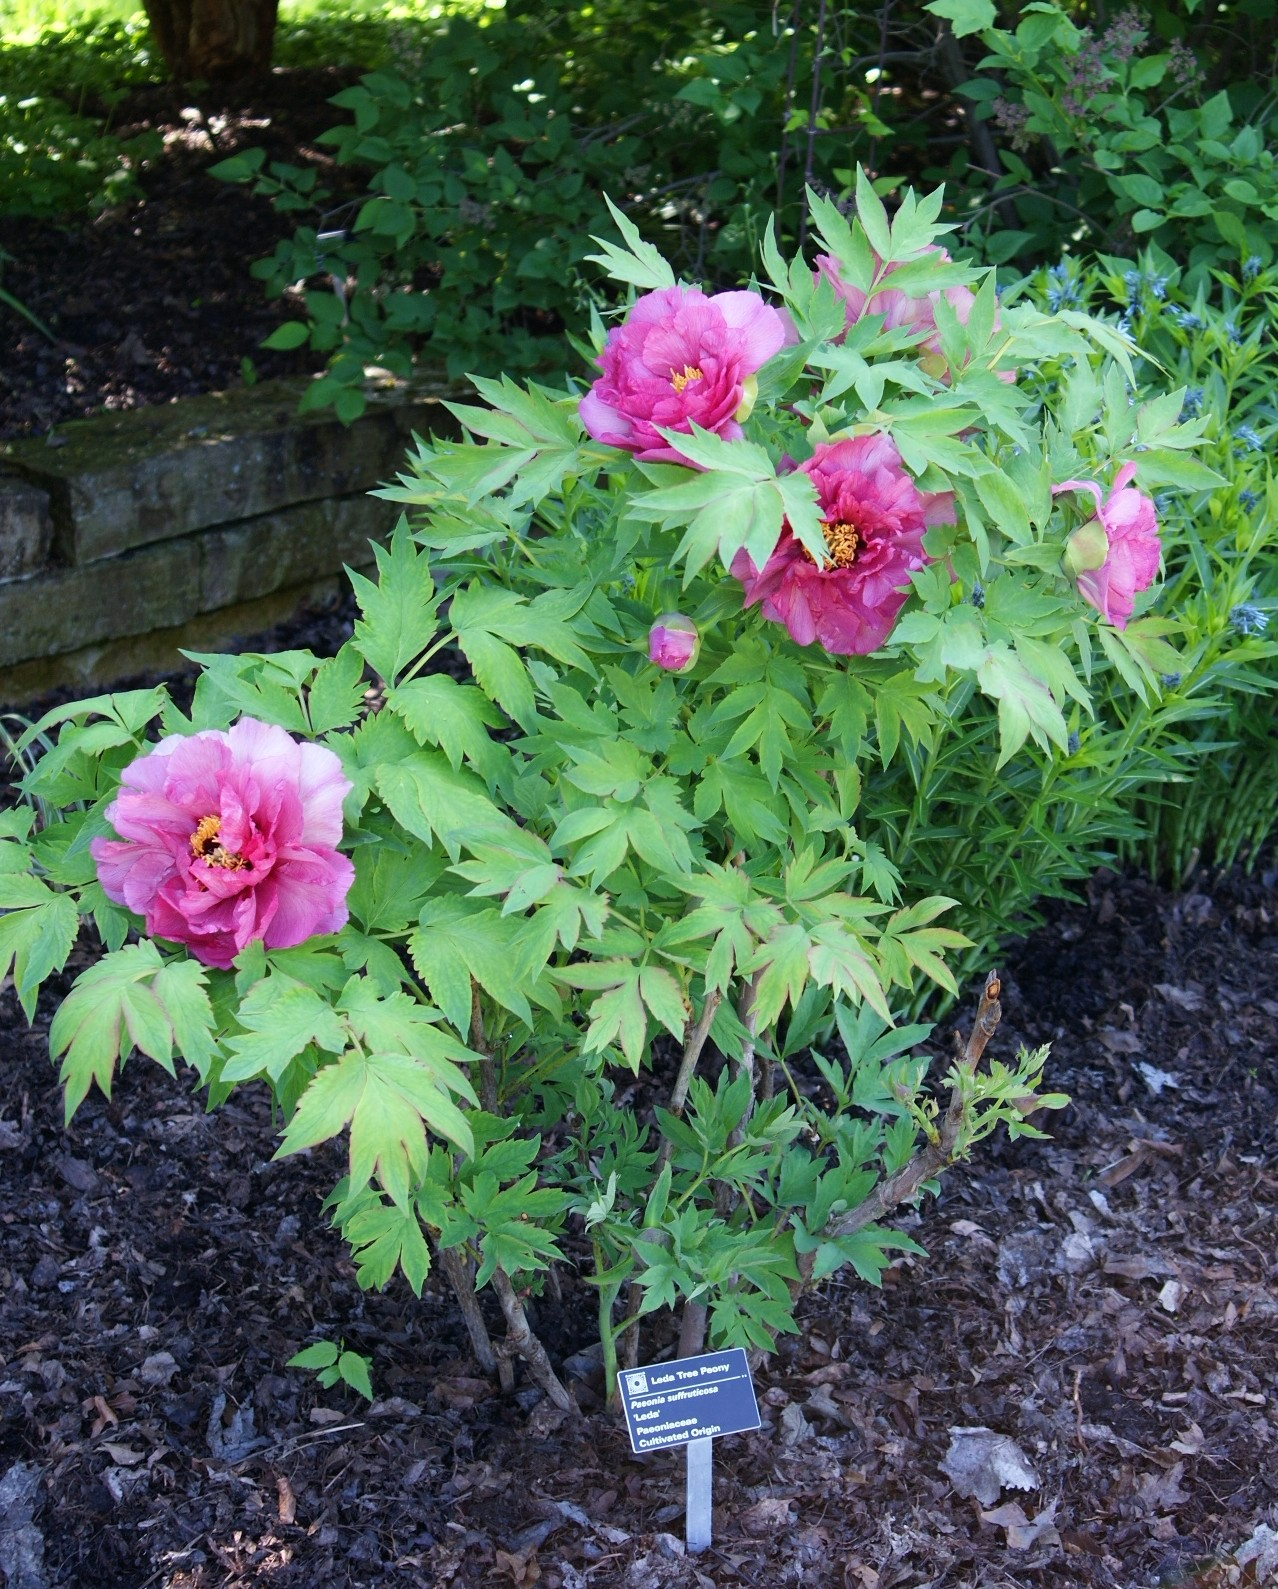 Visit My Garden: Japanese Tree Peonies at Olbrich